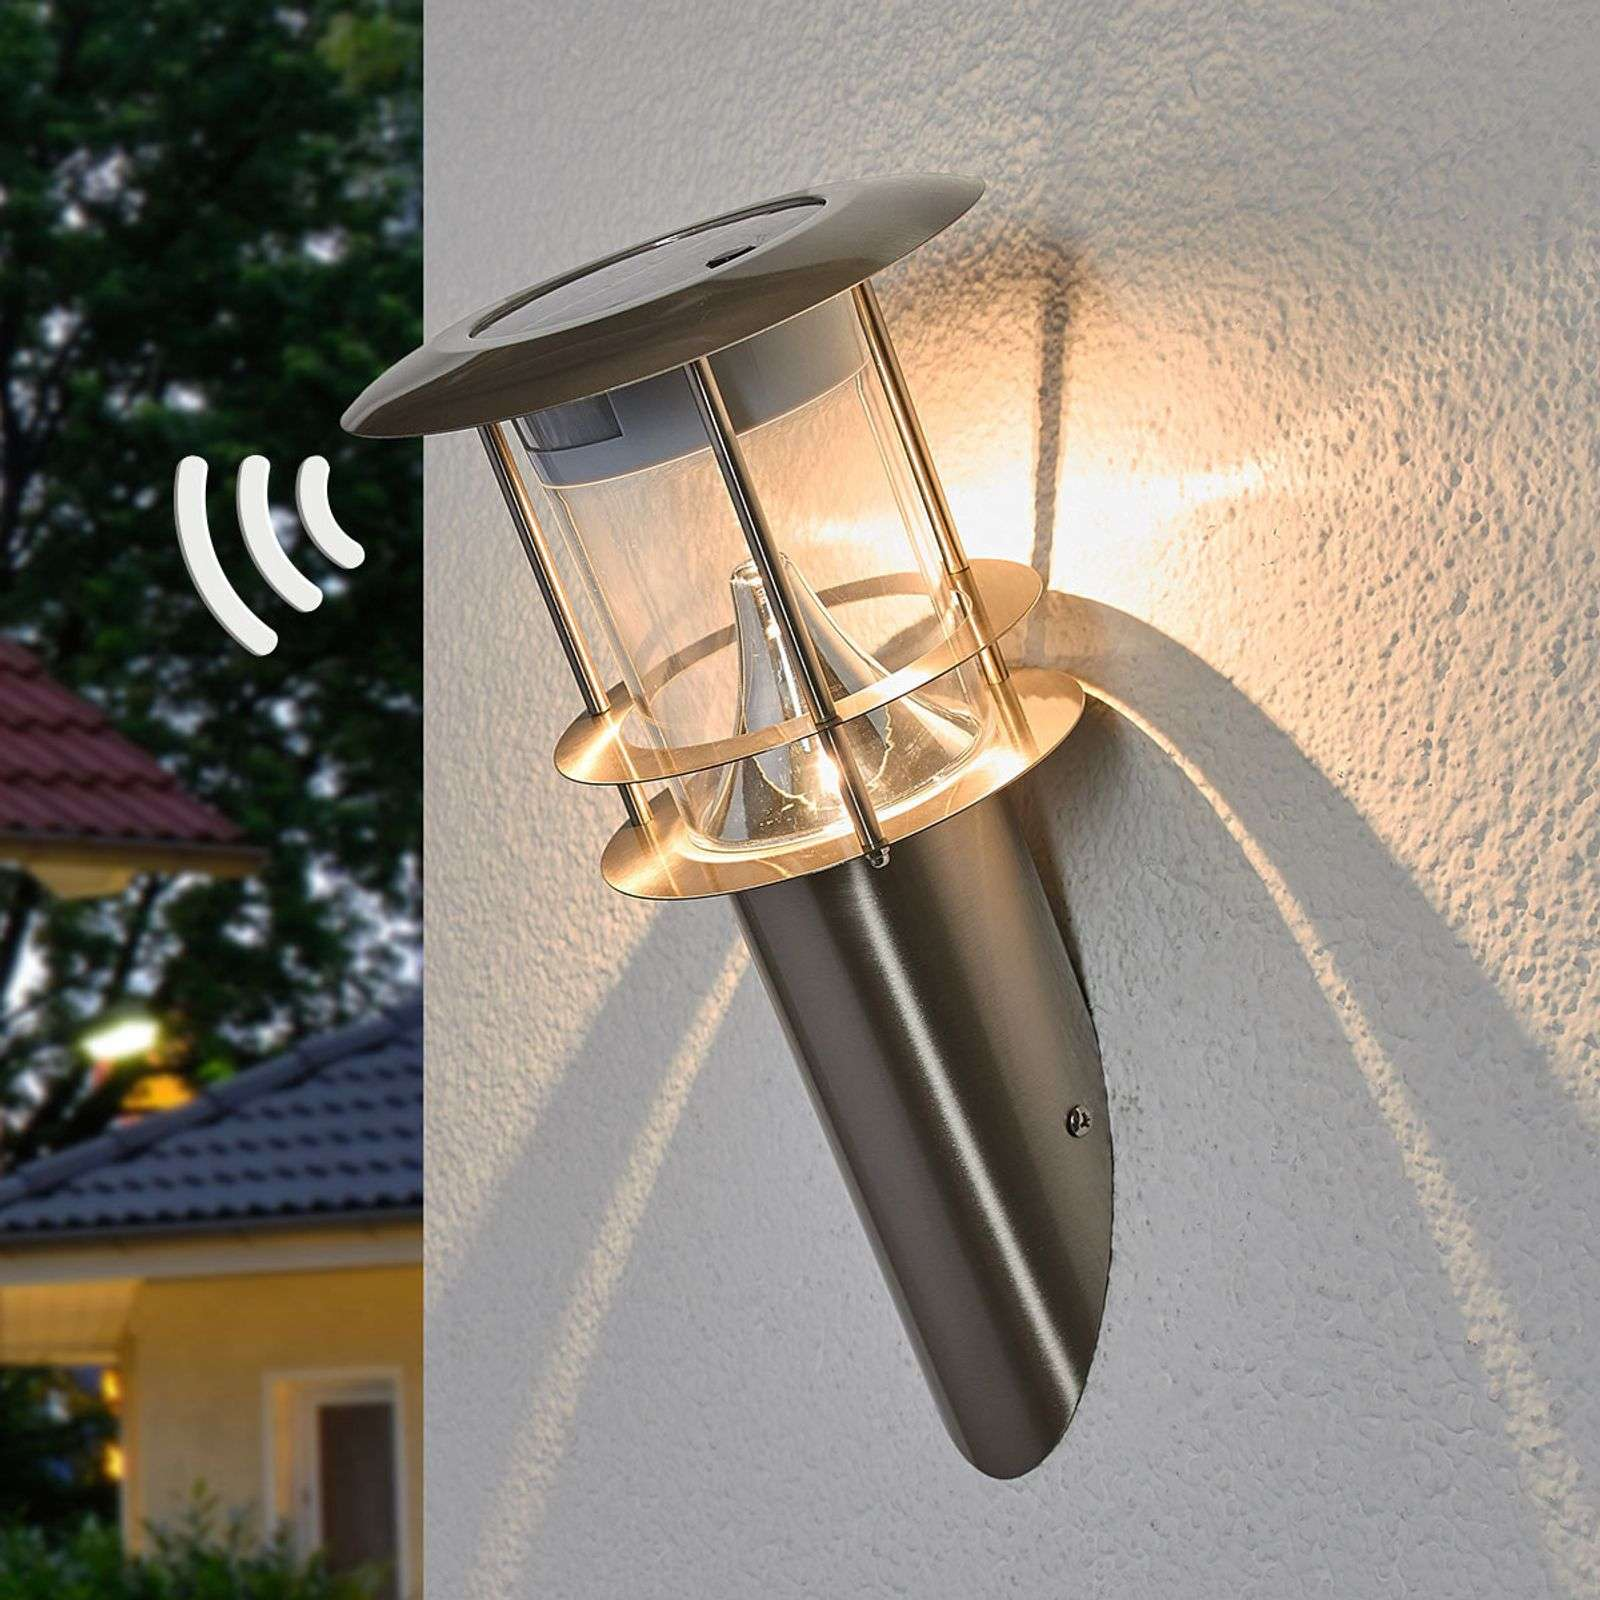 LED solar wandlamp Brush met sensor